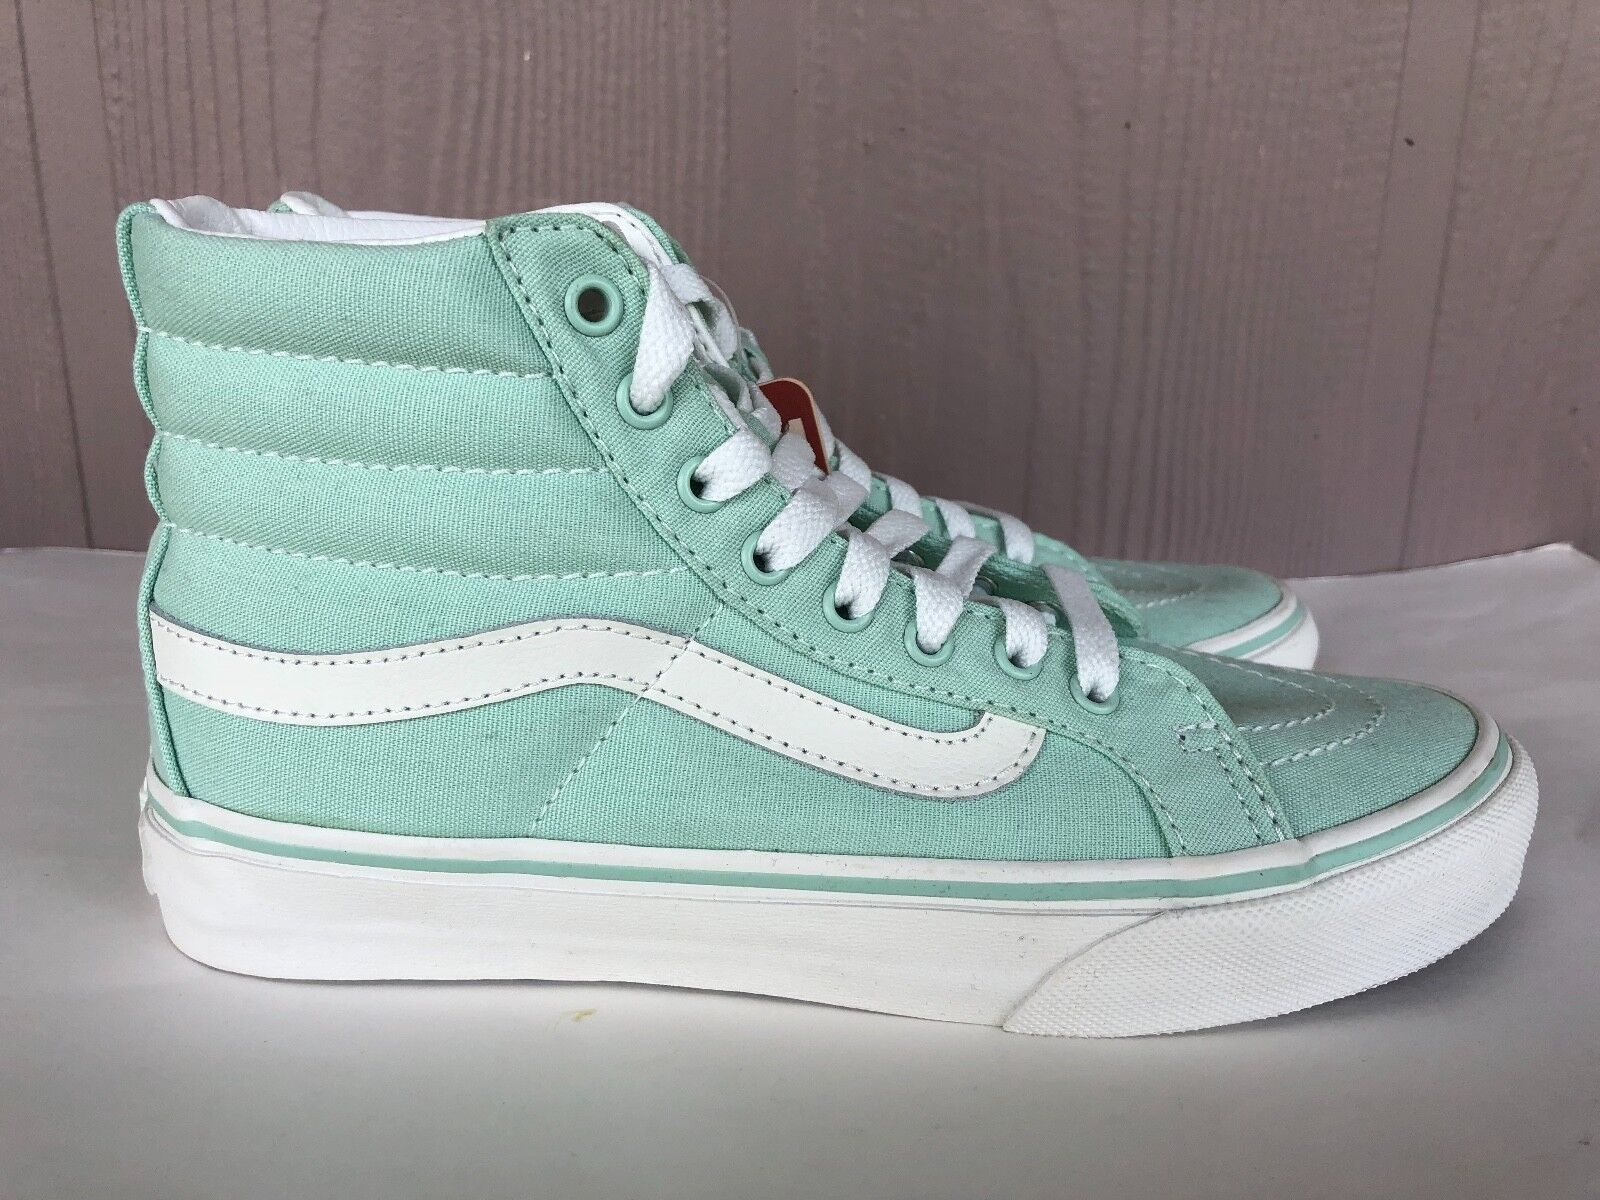 Women's Vans SK8-Hi Slim Racing Canvas Casual Mint Green Size 6.5 721454